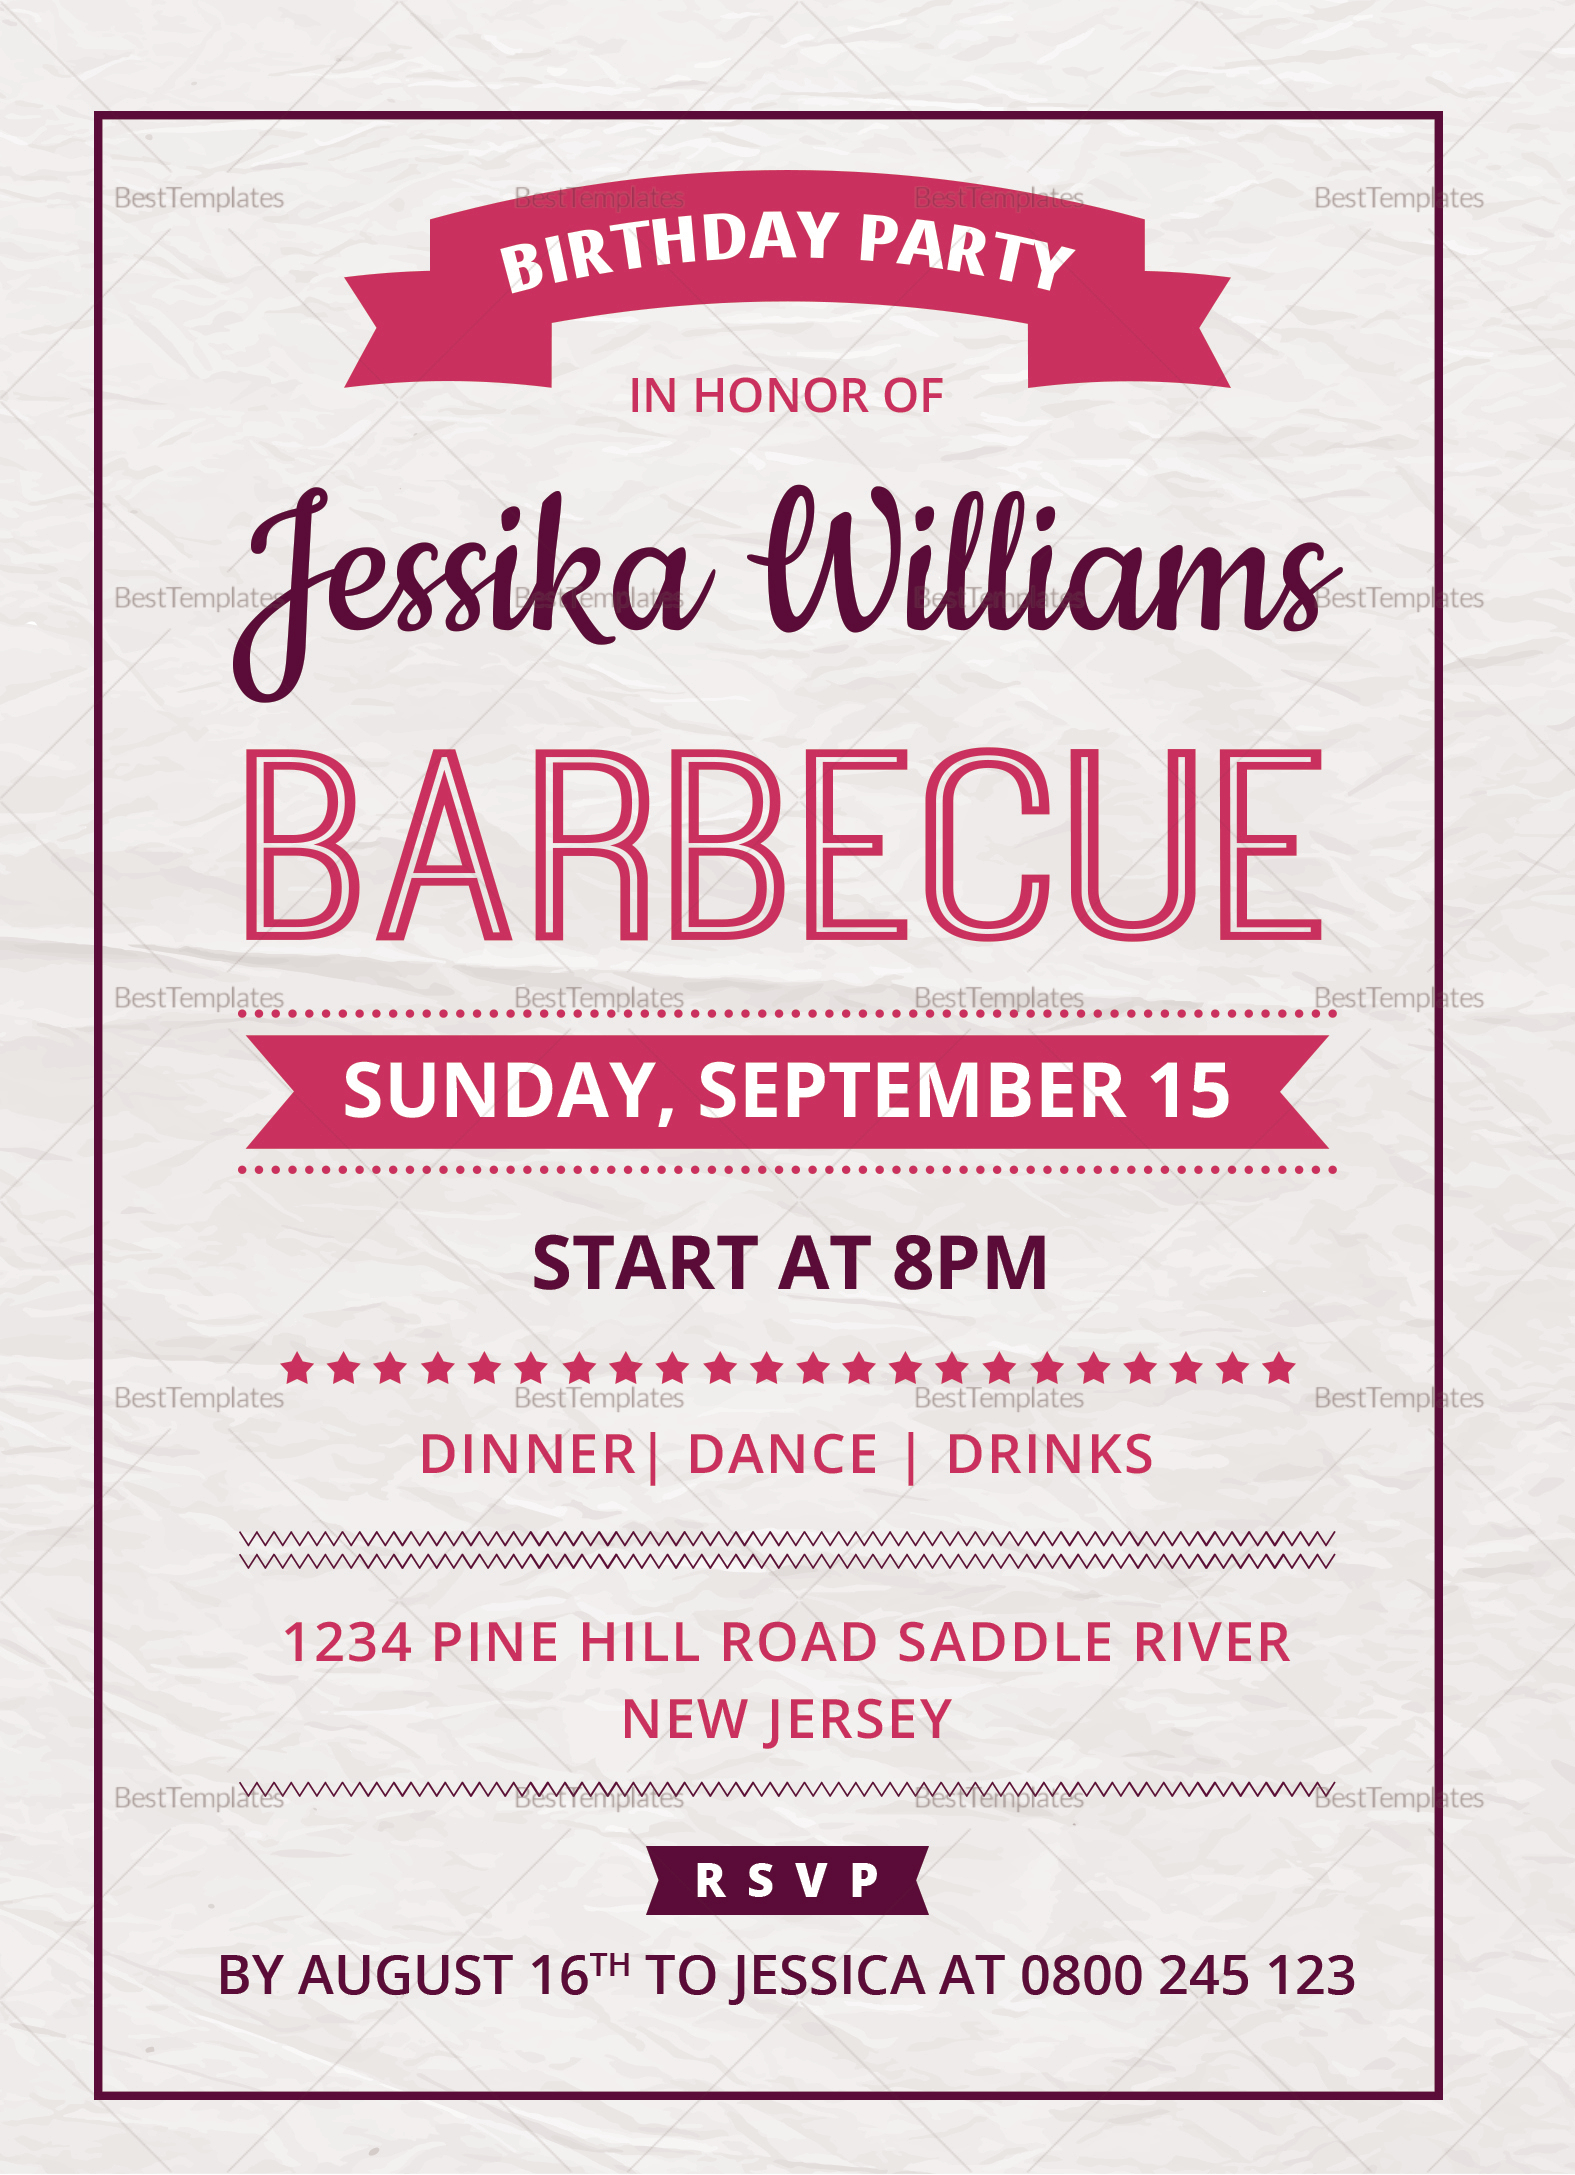 BBQ Birthday Party Invitation Card Design Template